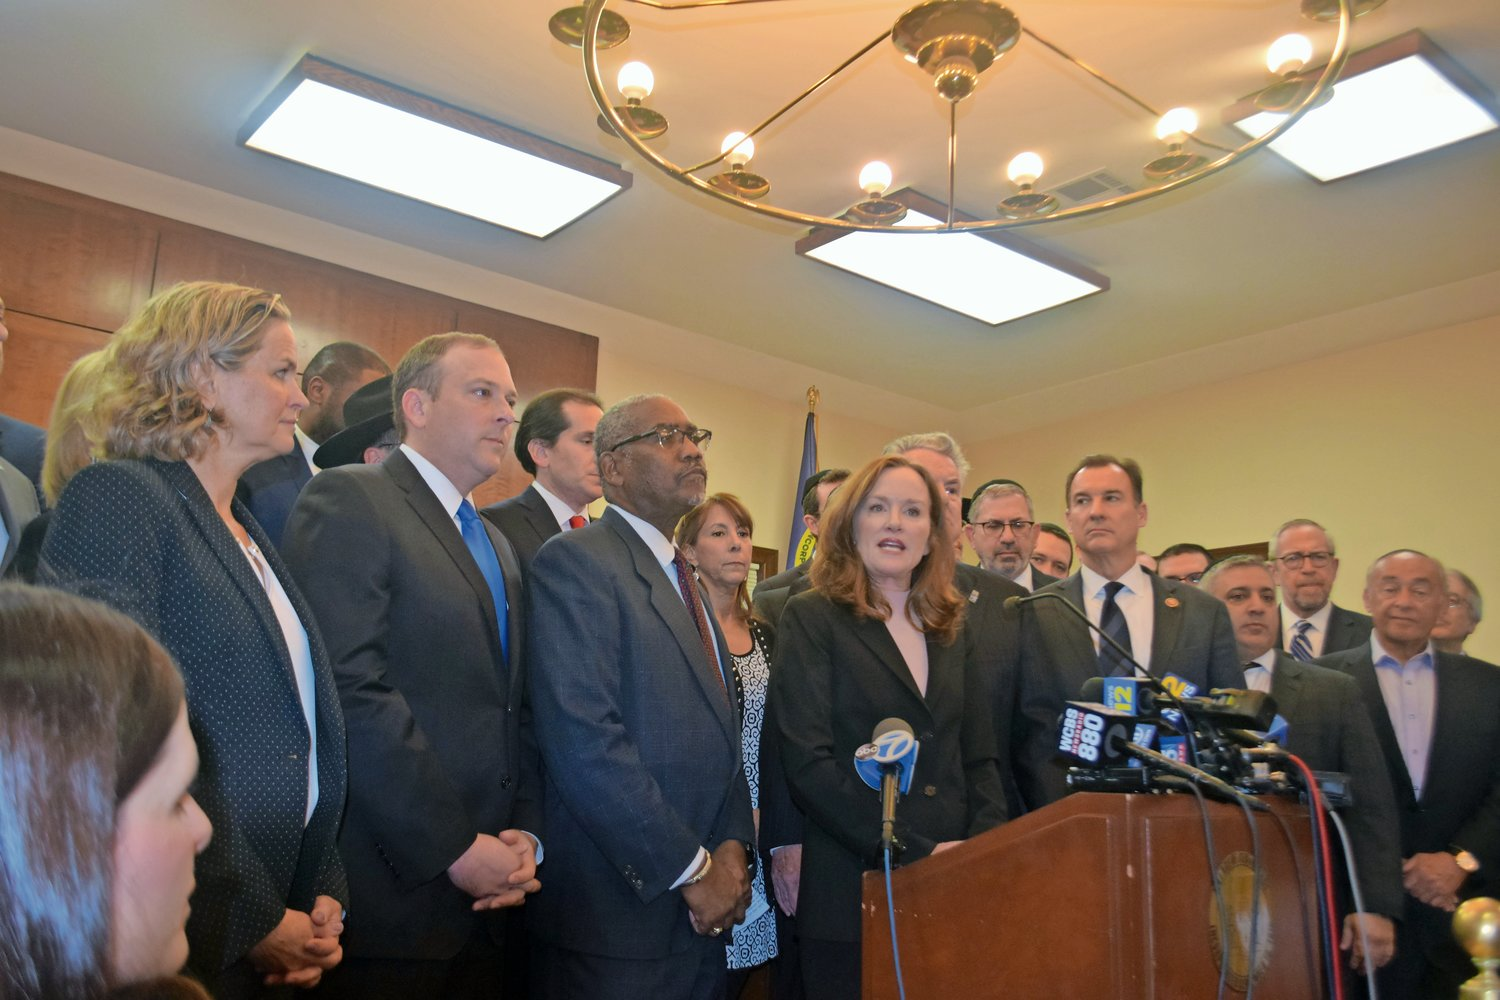 U.S. Rep. Kathleen Rice, at lectern, led the Long Island congressional delegation and many other elected and appointed officials in showing a united front against anti-Semitism on Jan. 3.